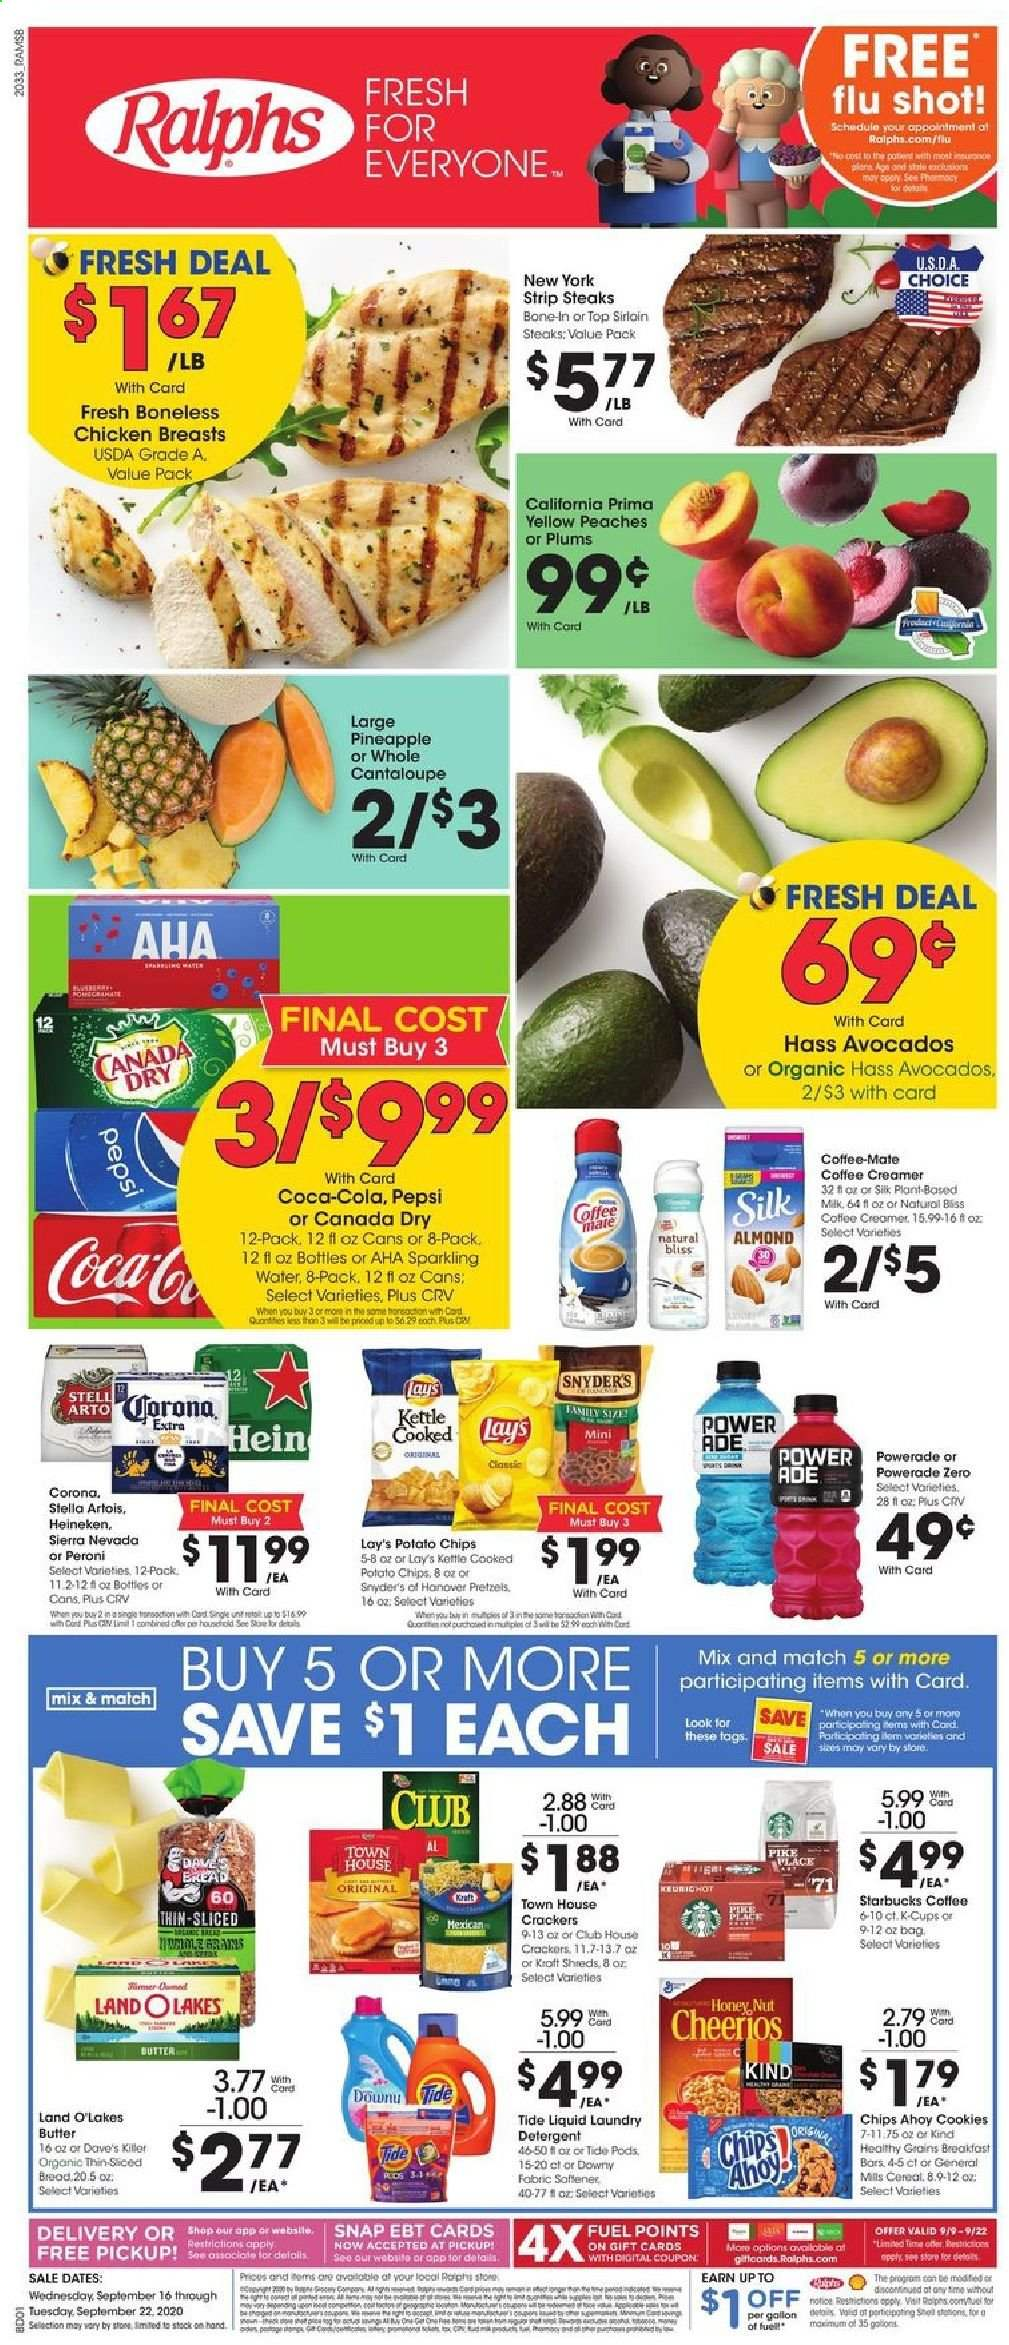 Ralphs Flyer - 09.16.2020 - 09.22.2020 - Sales products - avocado, butter, canada dry, cantaloupe, cereals, coca-cola, coffee-mate, cookies, crackers, dates, detergent, downy, fuel, mate, milk, shell, starbucks, stella artois, tide, honey, pike, pineapple, plums, potato chips, powerade, pretzels, cheerios, chicken, chicken breast, peaches, pepsi, organic, chips, creamer, sparkling water, coffee creamer, cereal, lay's, corona, heineken, liquid, laundry detergent, chicken breasts, kettle, peache. Page 1.